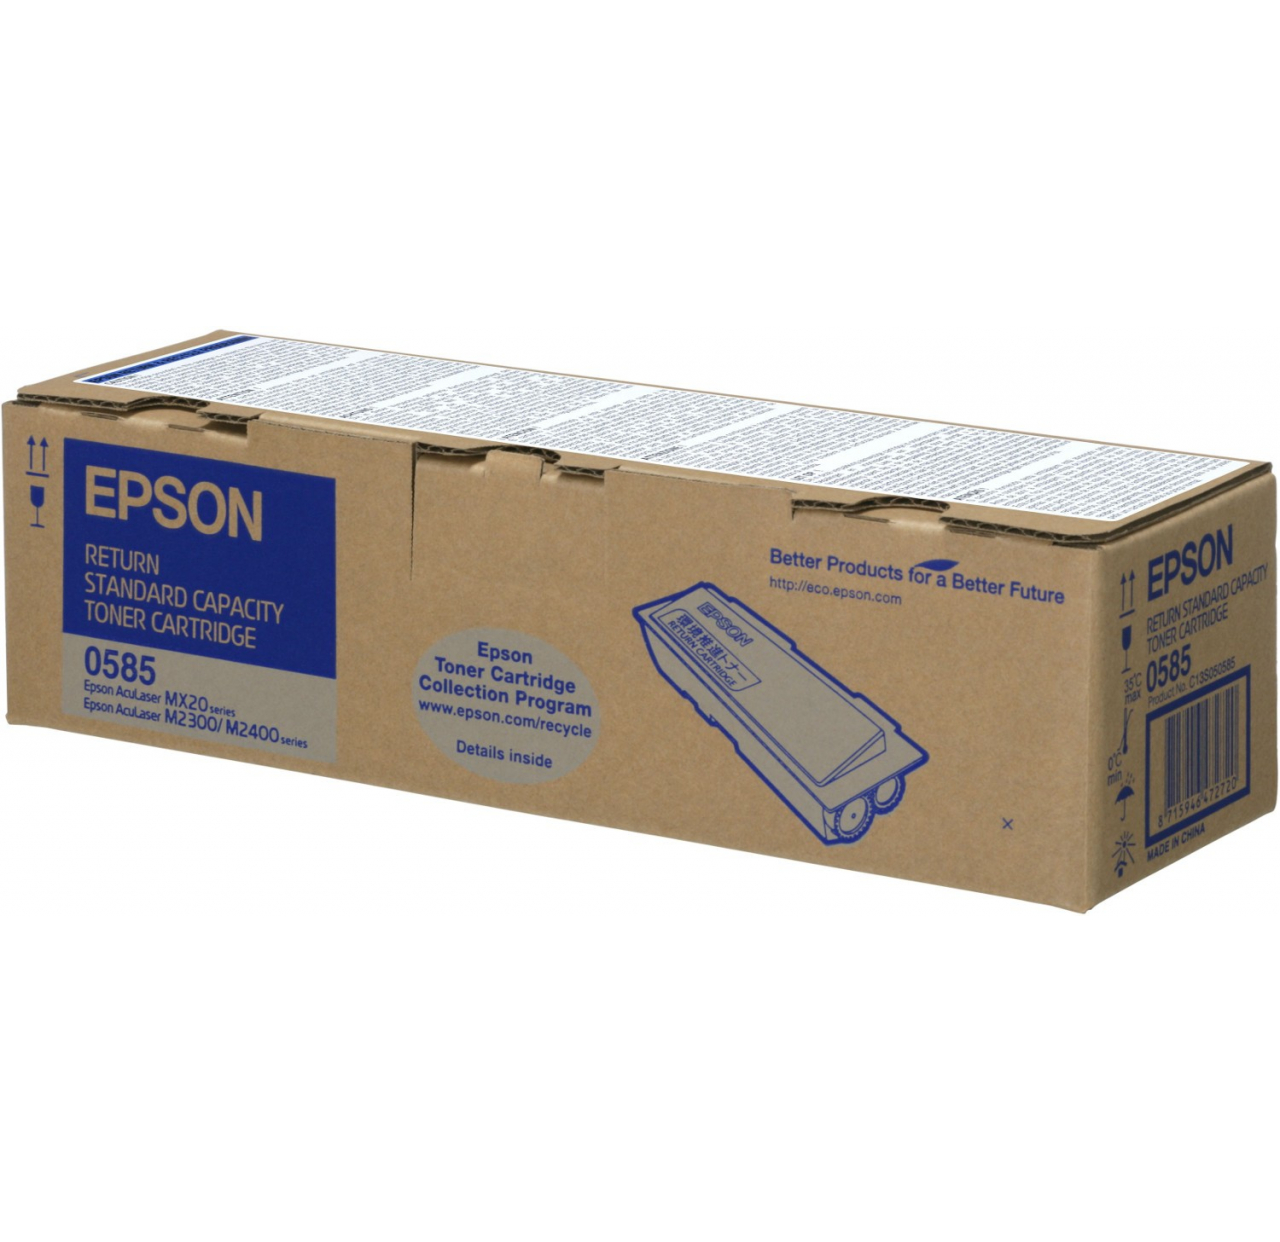 Toner Epson black|standard capacity|return|3000str|AcuLaser MX20/M2400/M2300